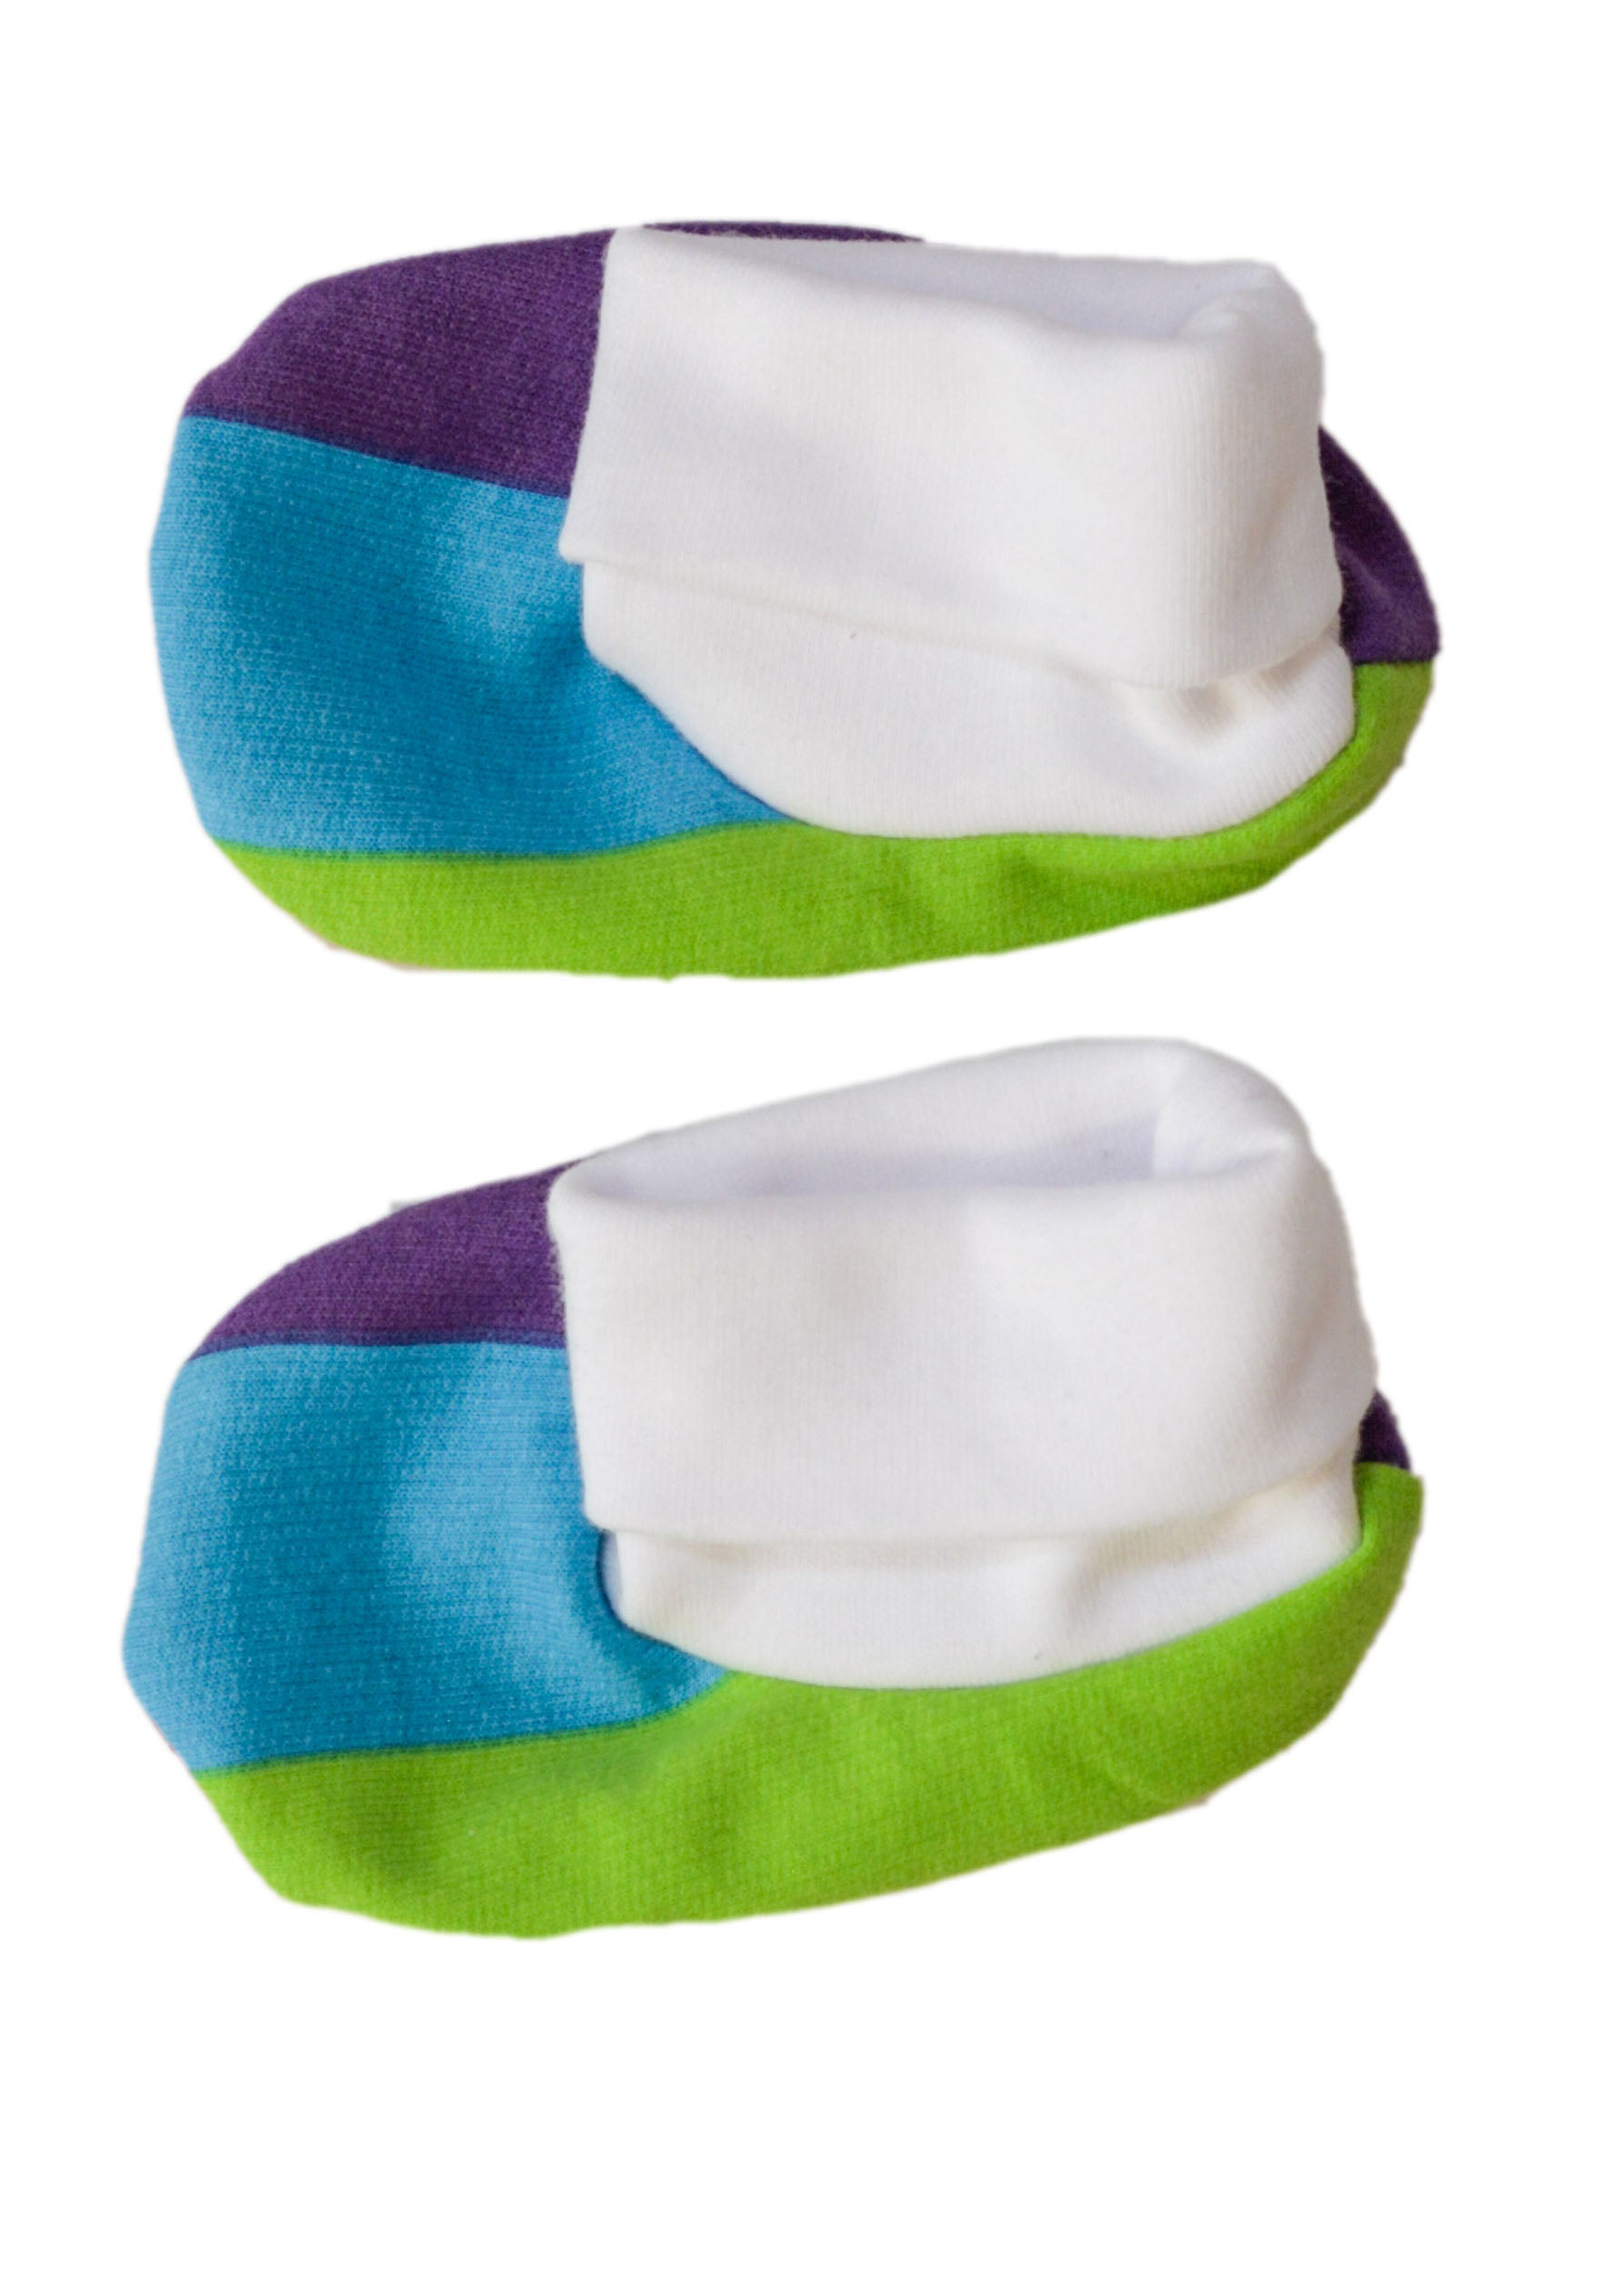 totoma rainbow slippers